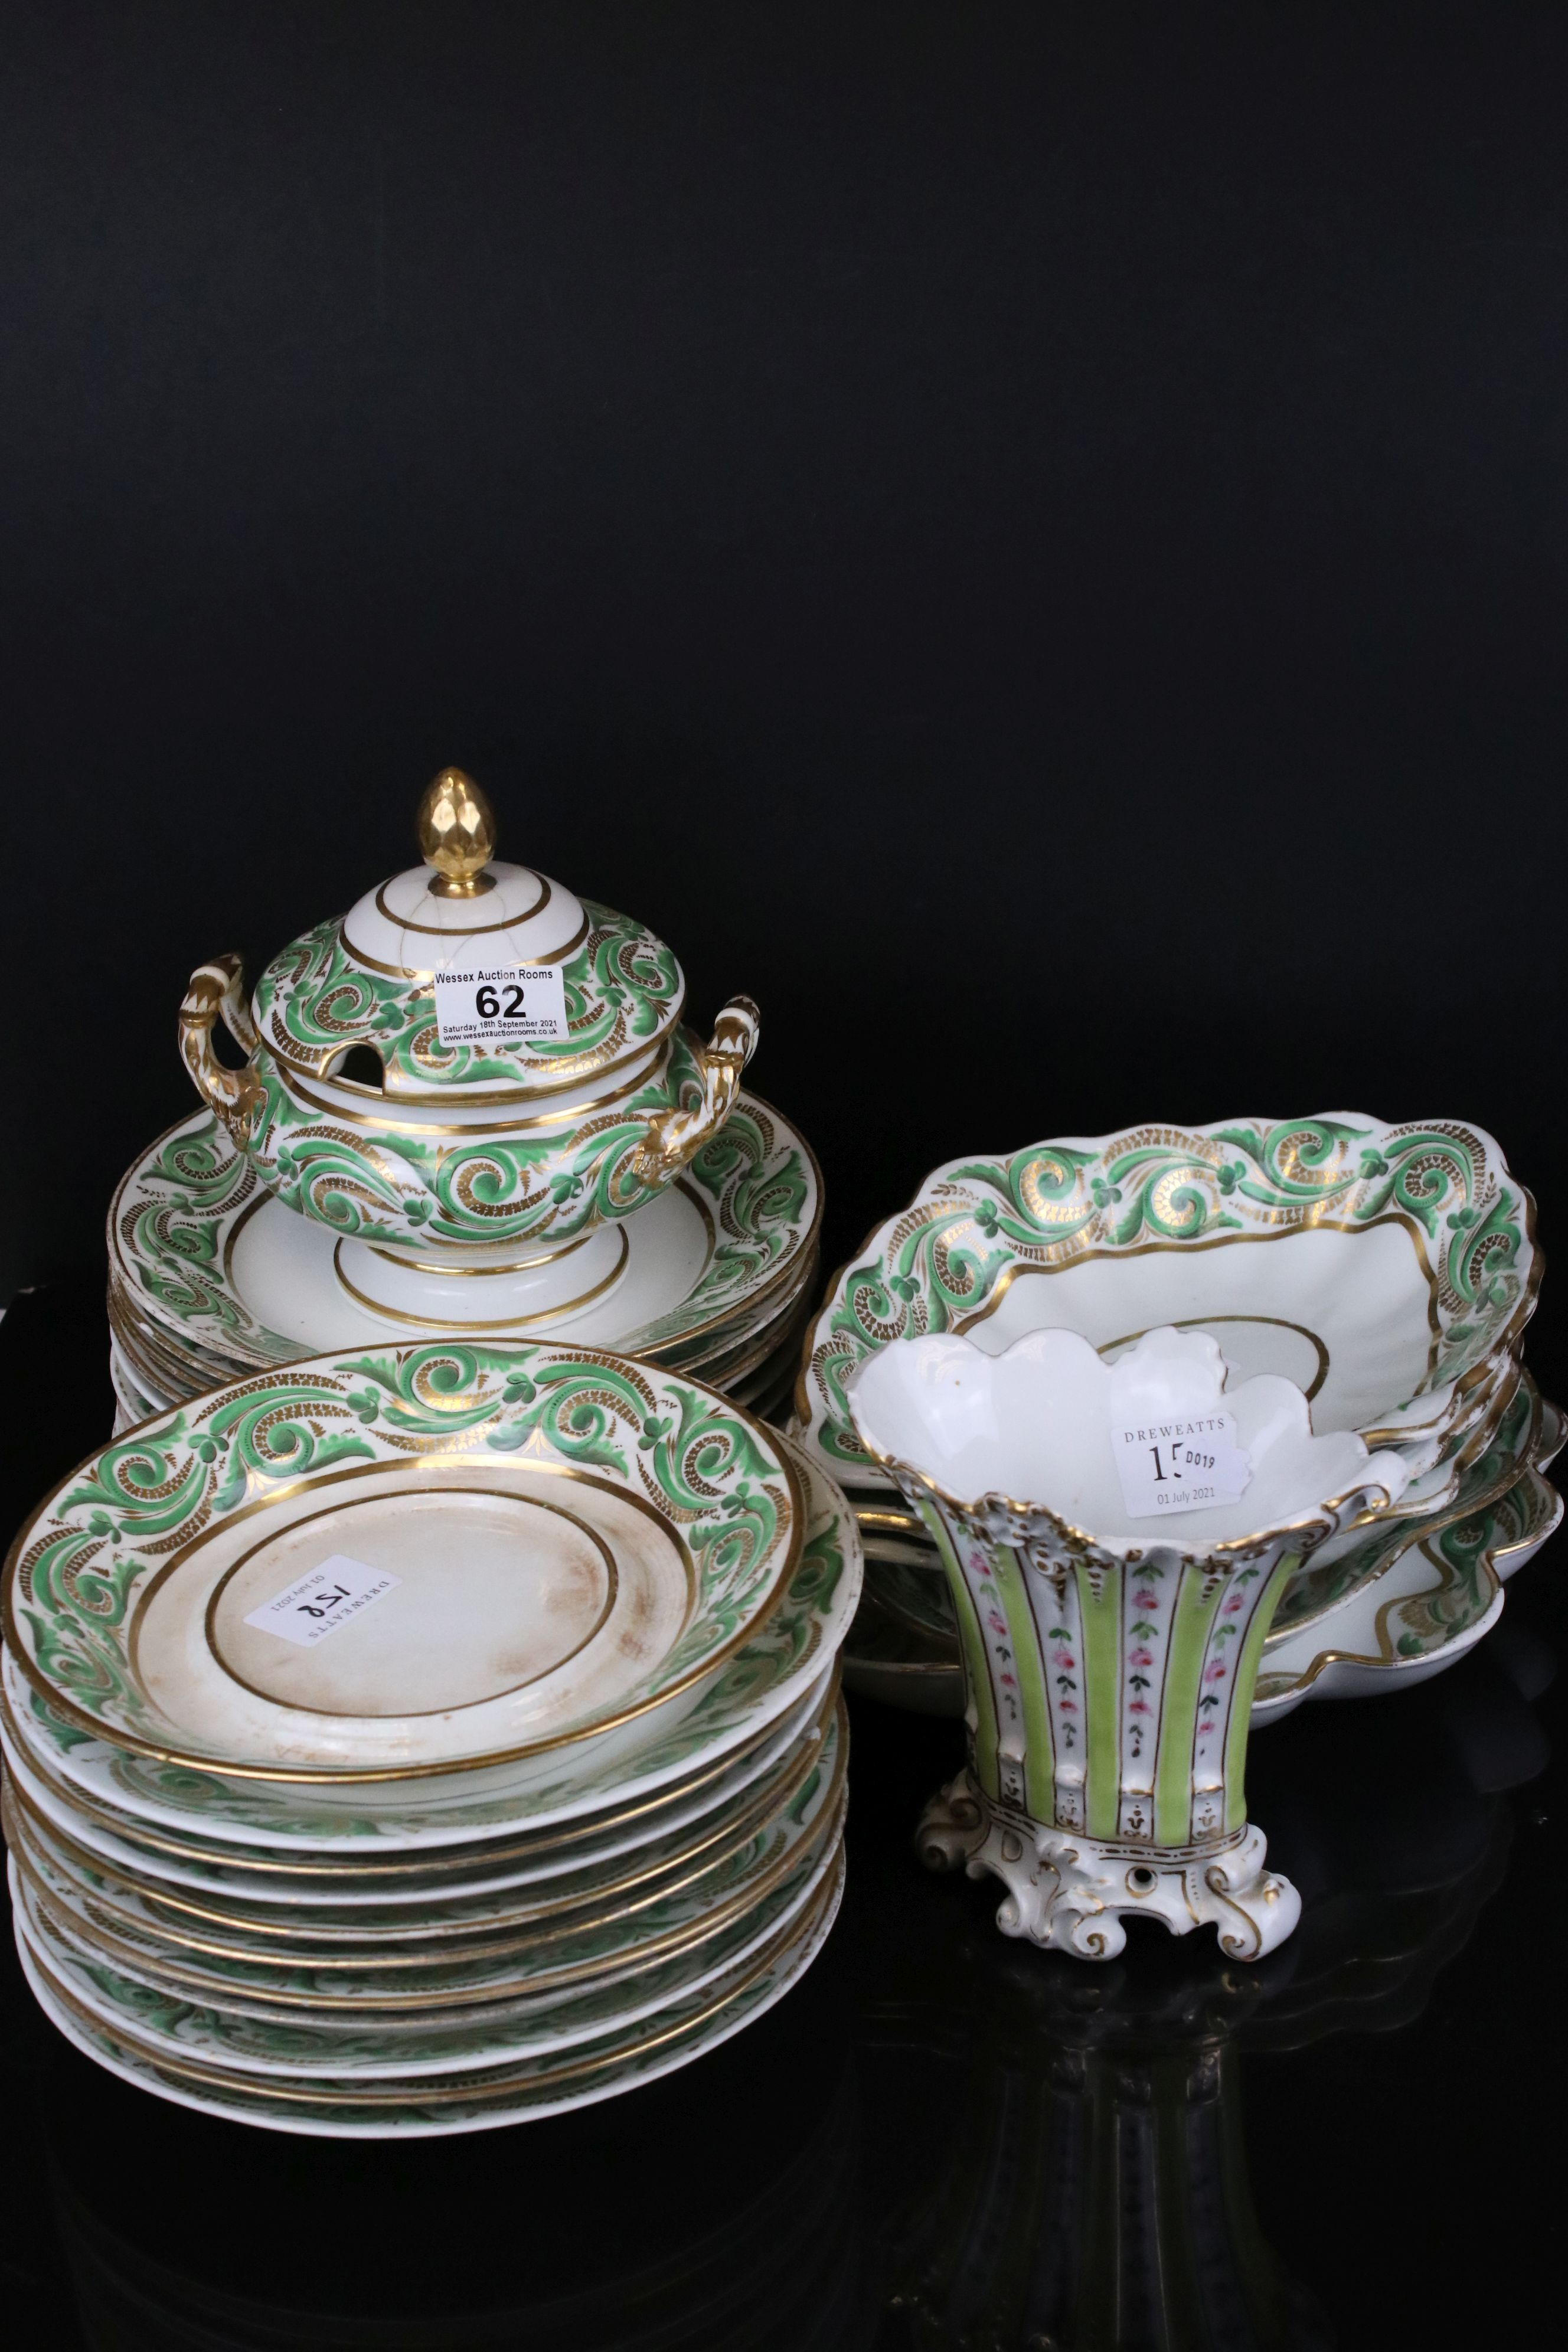 Early 19th century Derby porcelain service, white ground with apple green and gilt scrolling